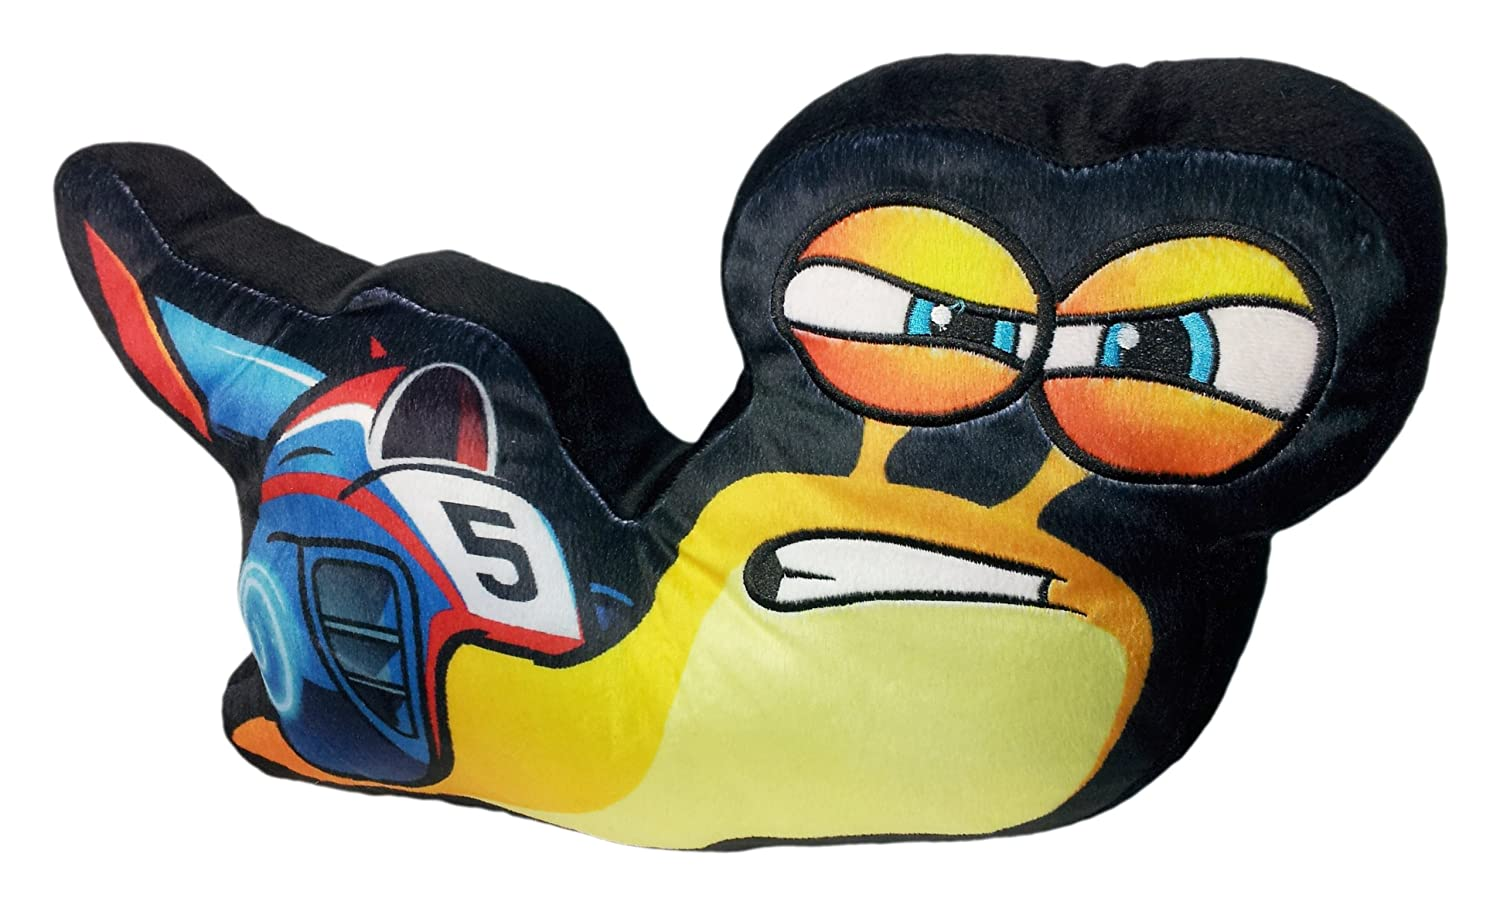 Dreamworks Turbo Shaped Pillow The Northwest Company 12849